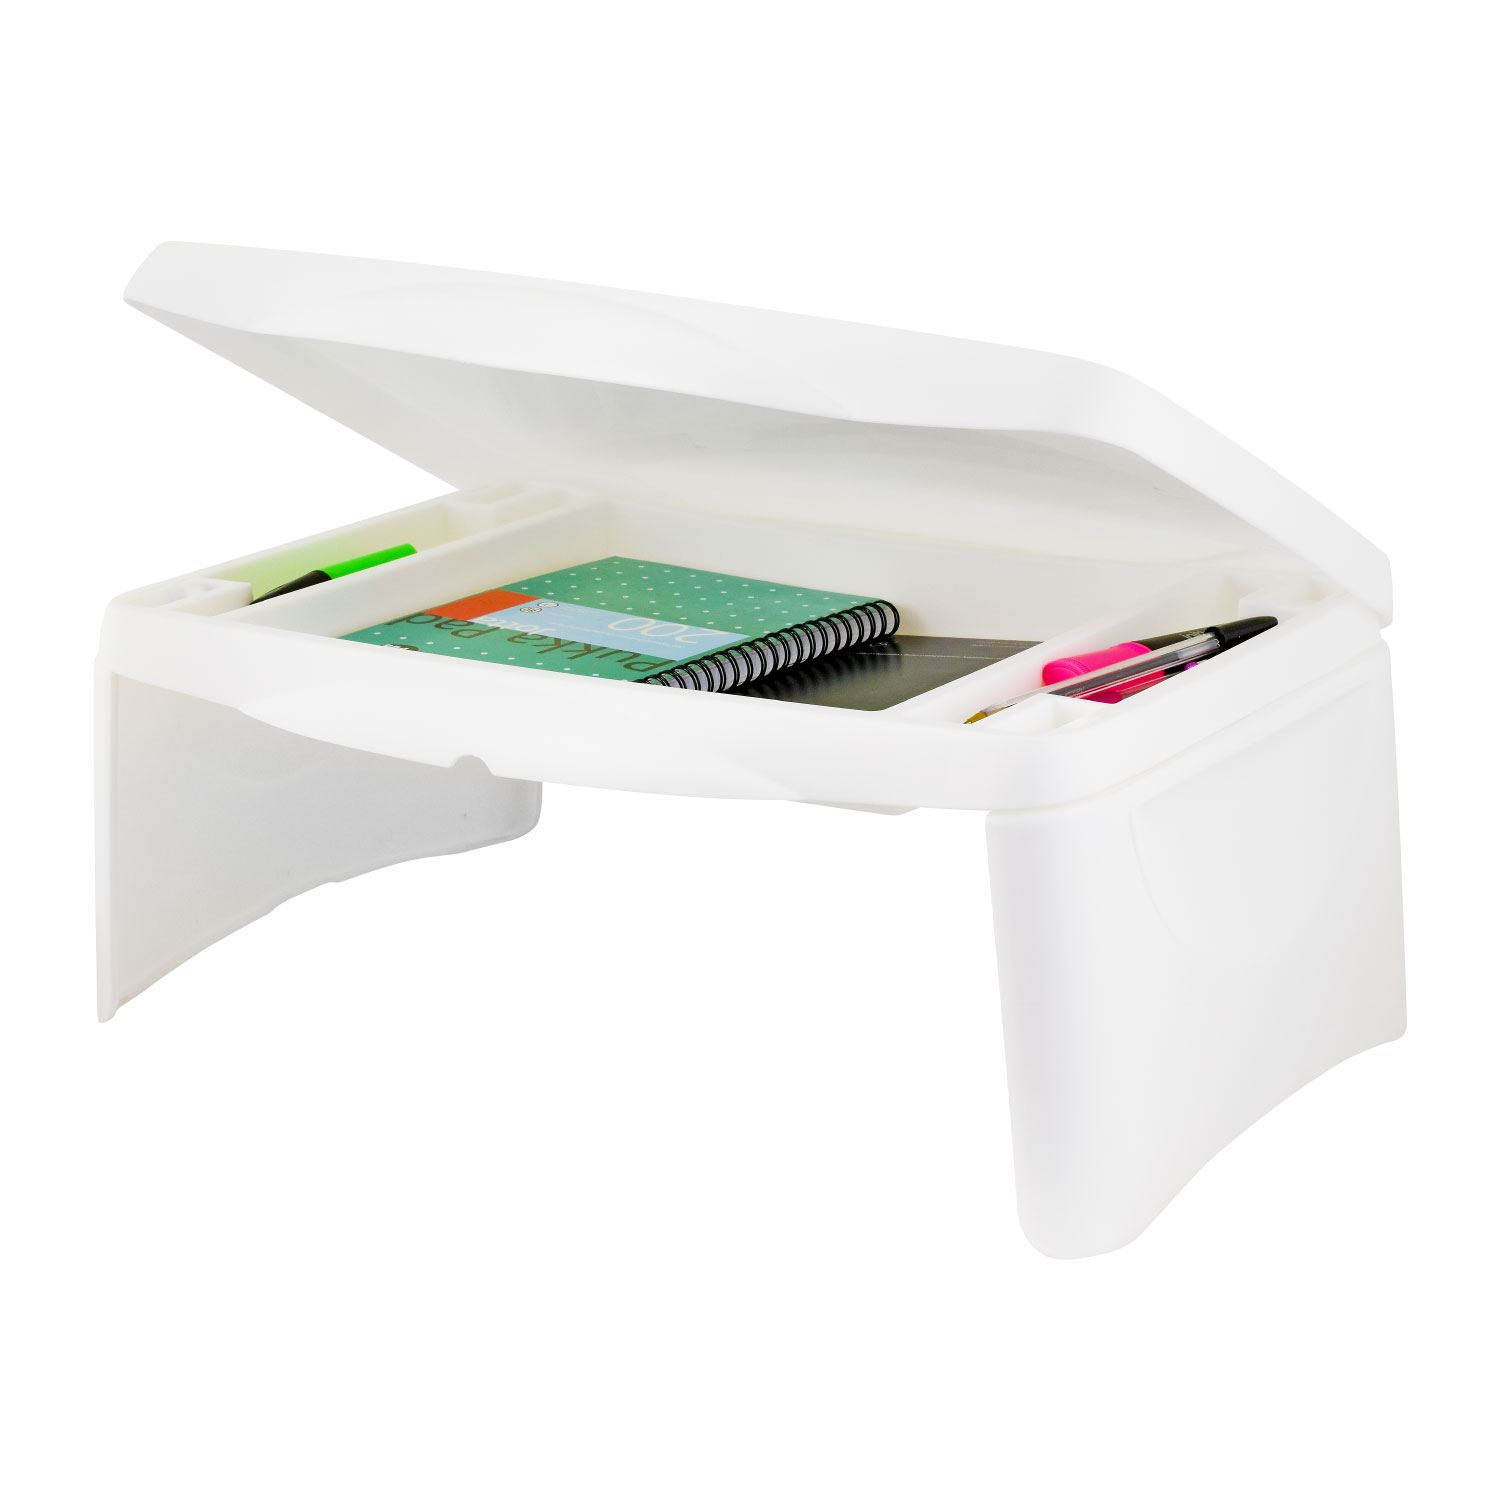 Perky Storage Lap Lap Desk Storage Compartment Storage Lap Desk Kids Portable Fing Lap Desk Writing Table baby Lap Desk With Storage